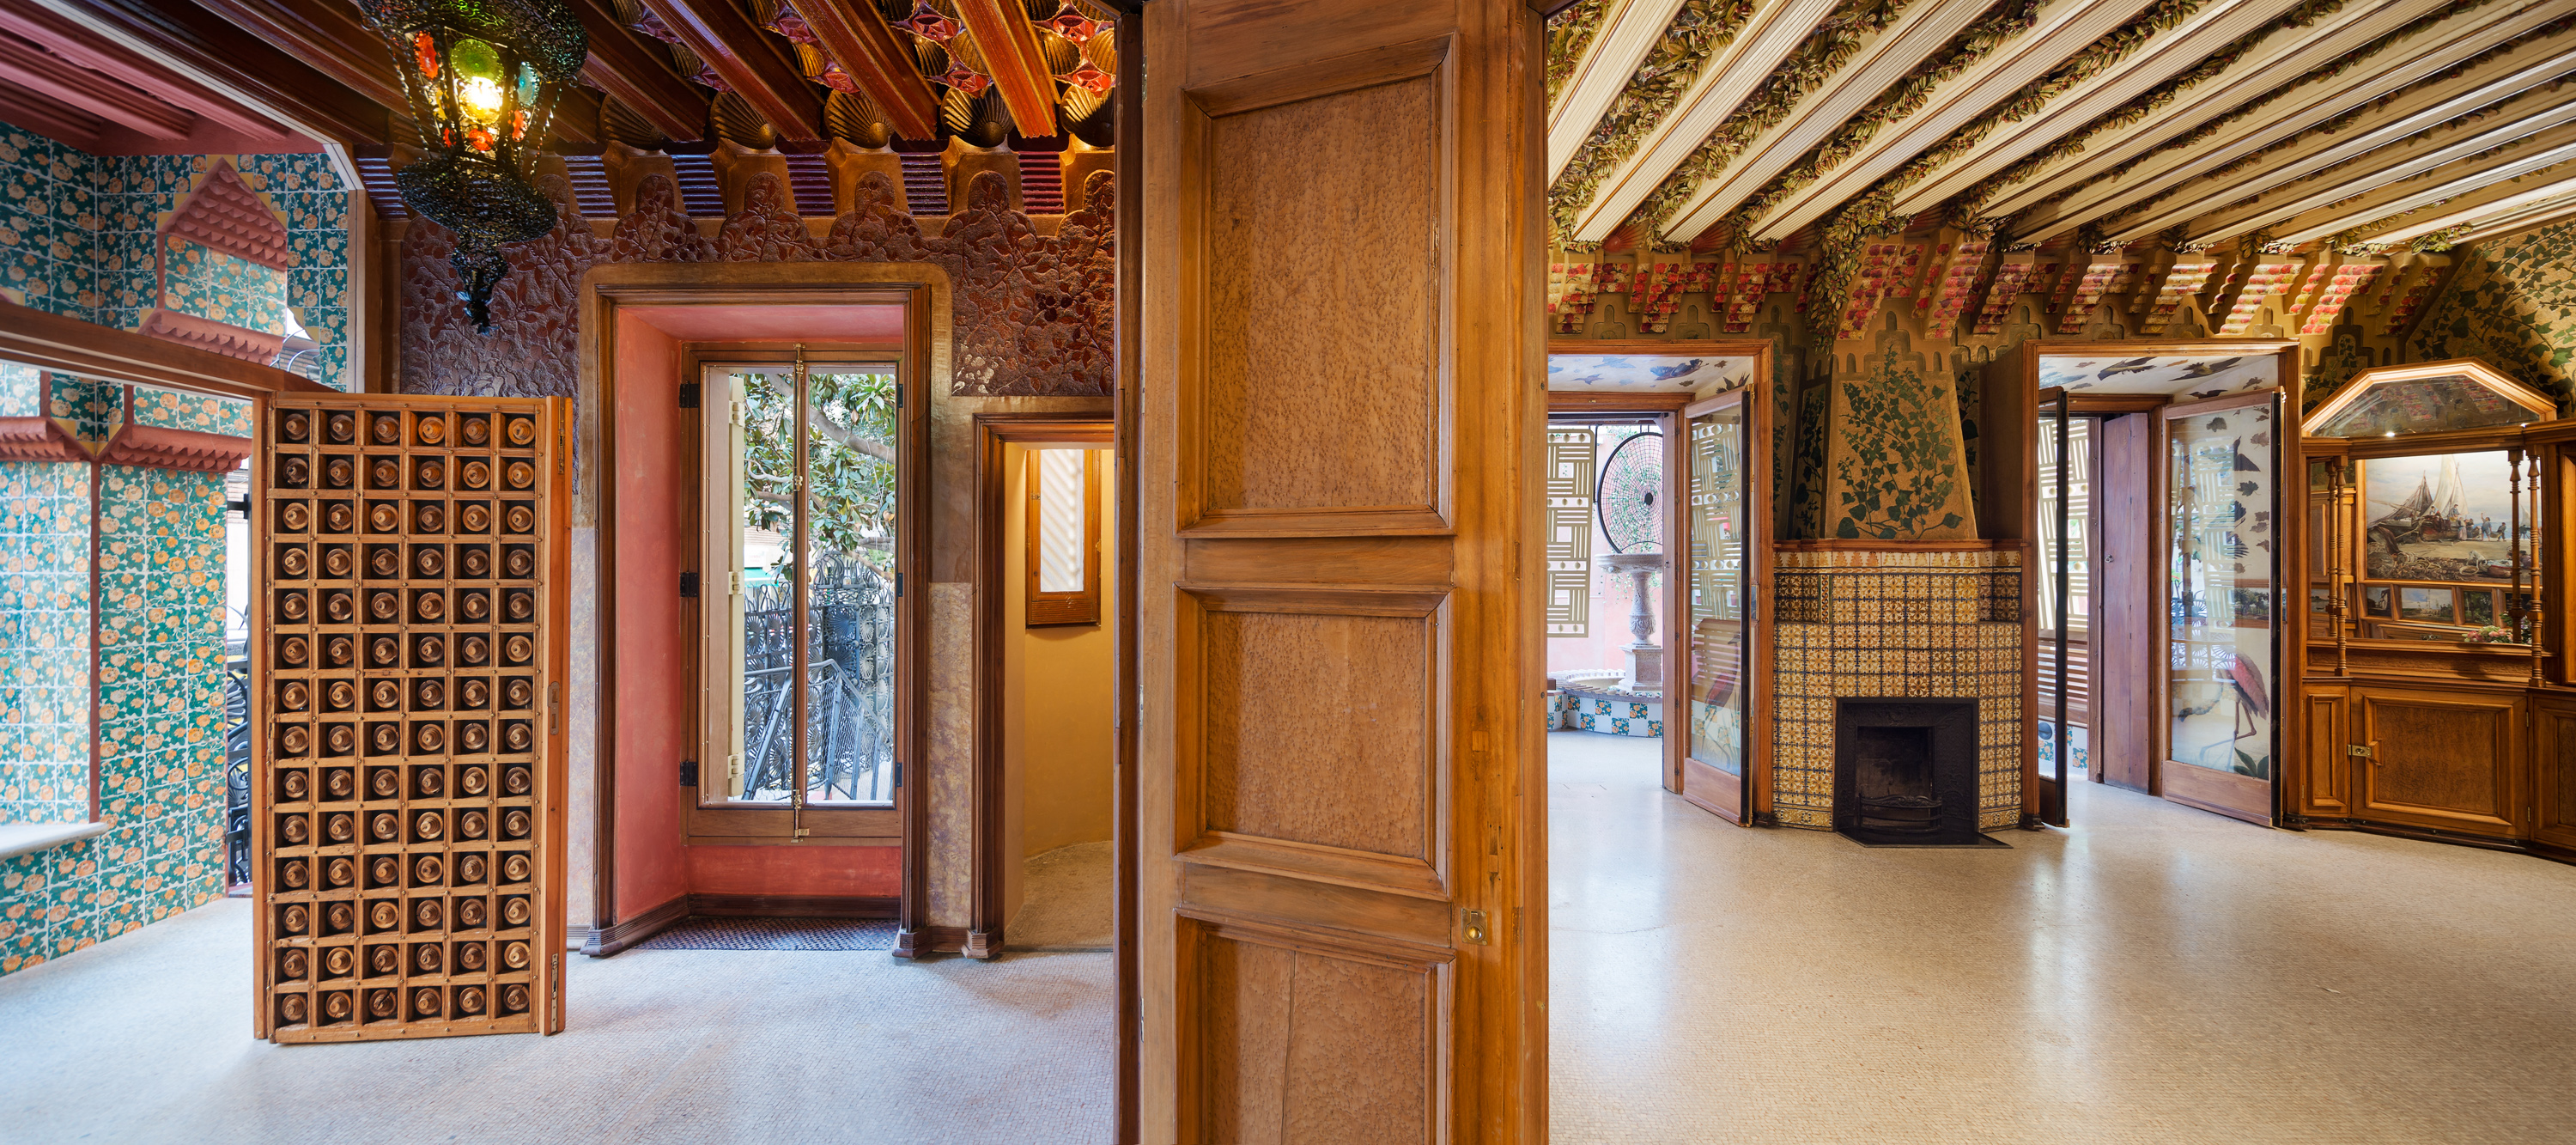 The Casa Vicens by Gaudí Reopens to the Public